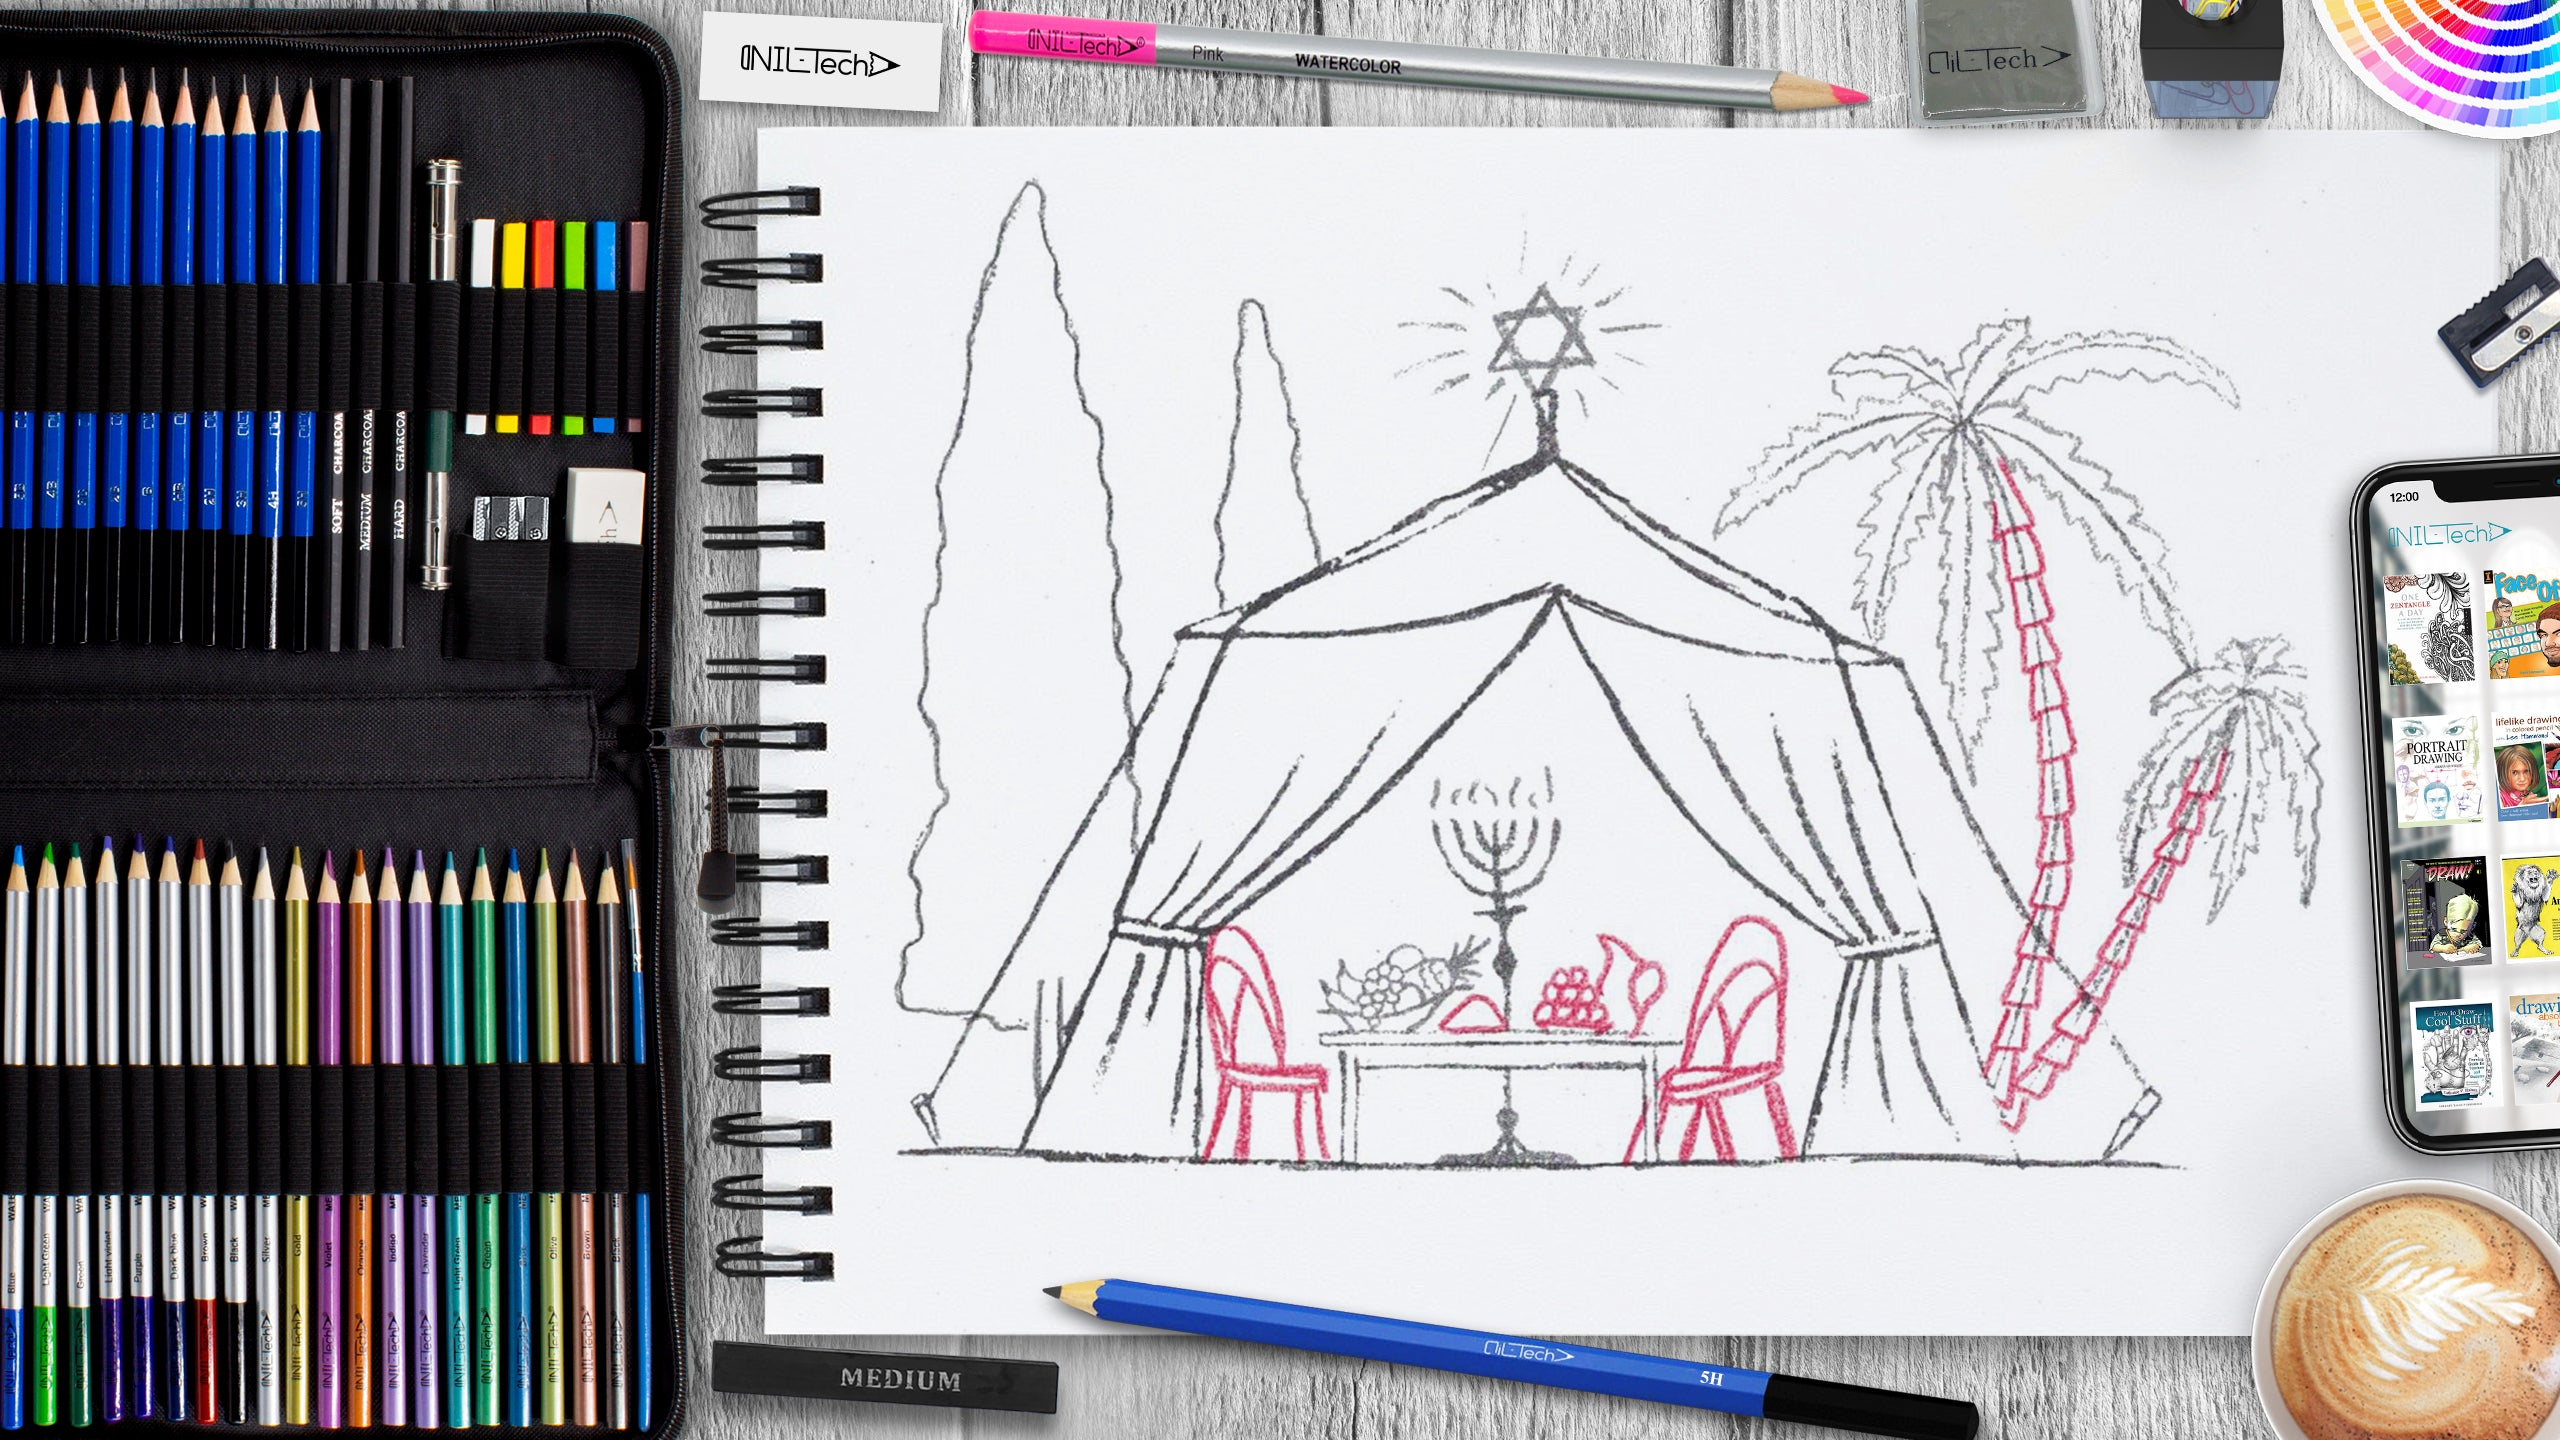 sukkot tent step by step pencil drawing tutorial